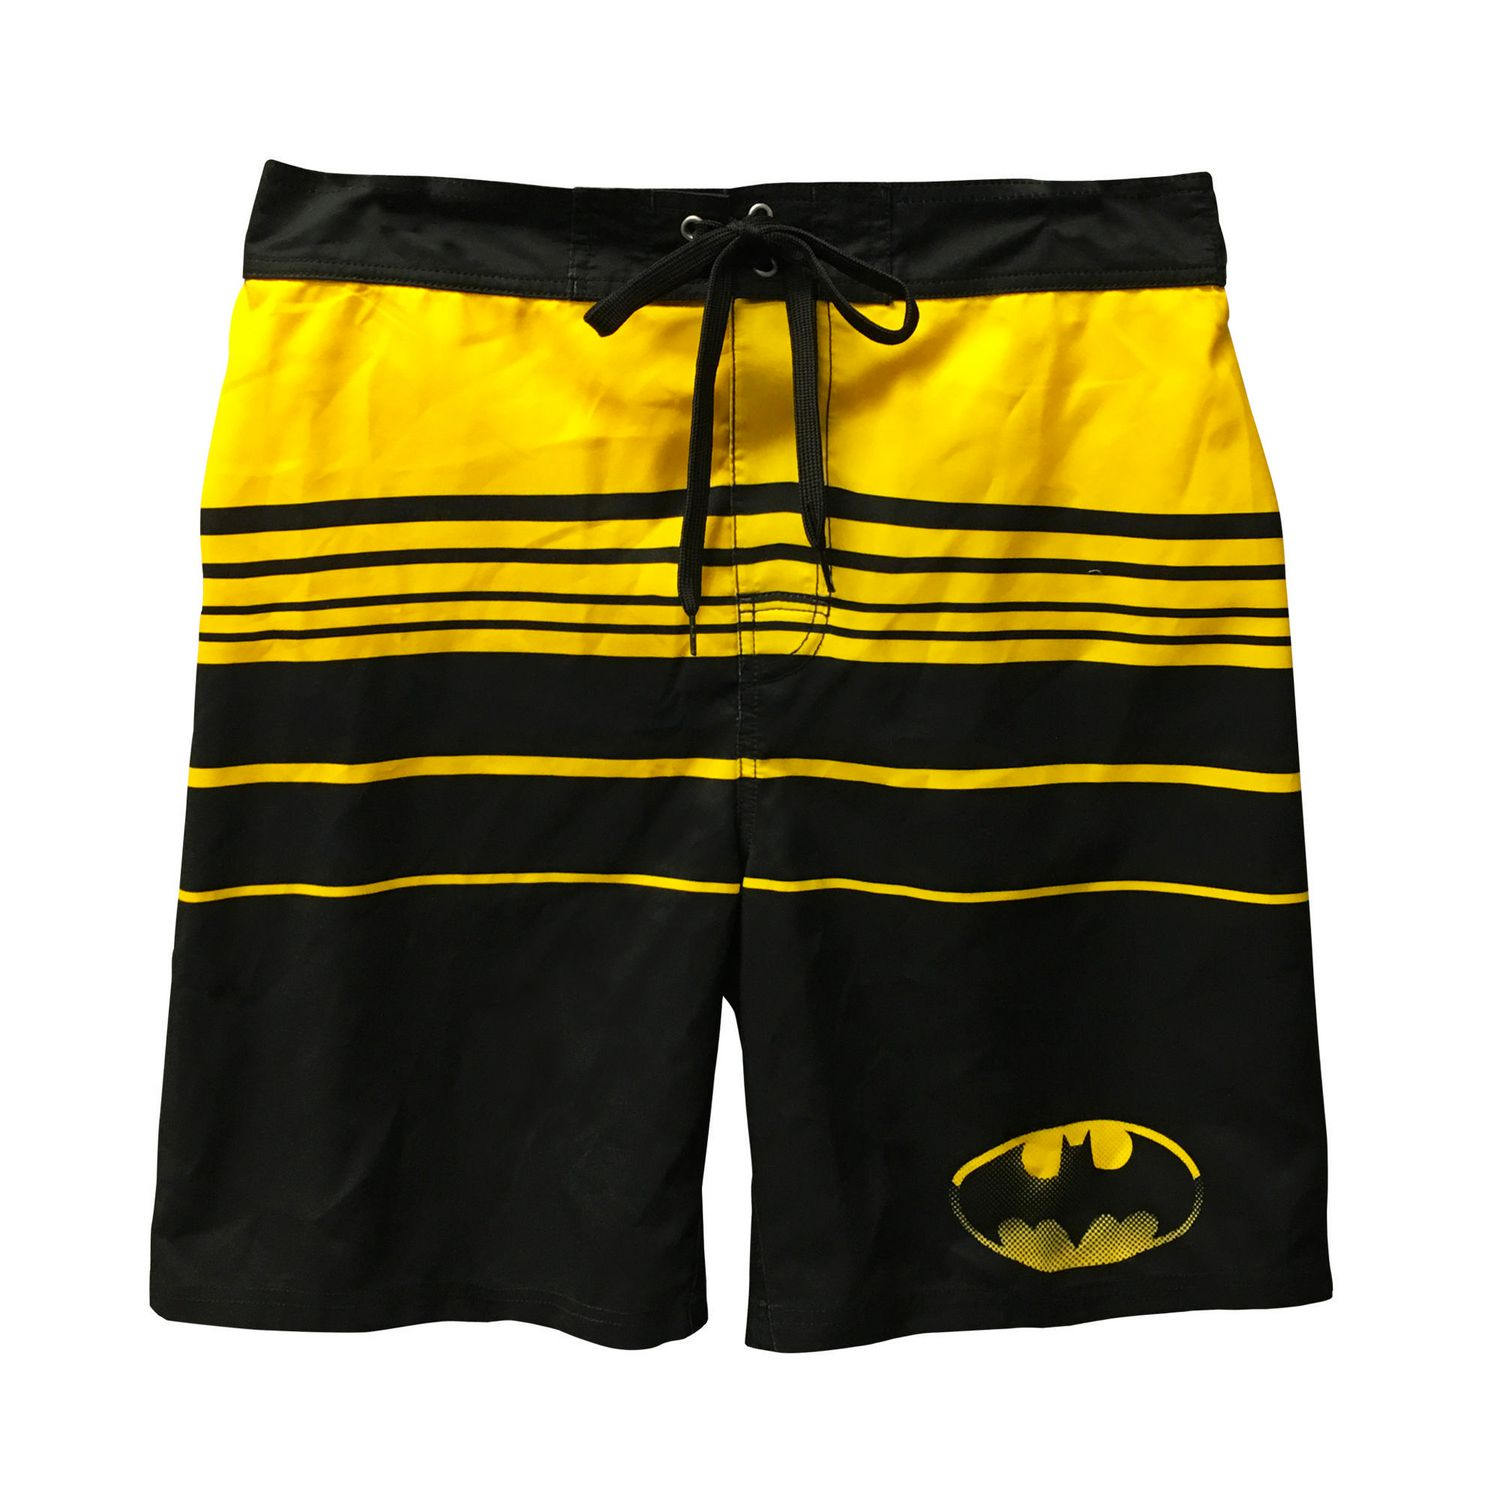 Batman Swimming Trunks Shorts Boxers